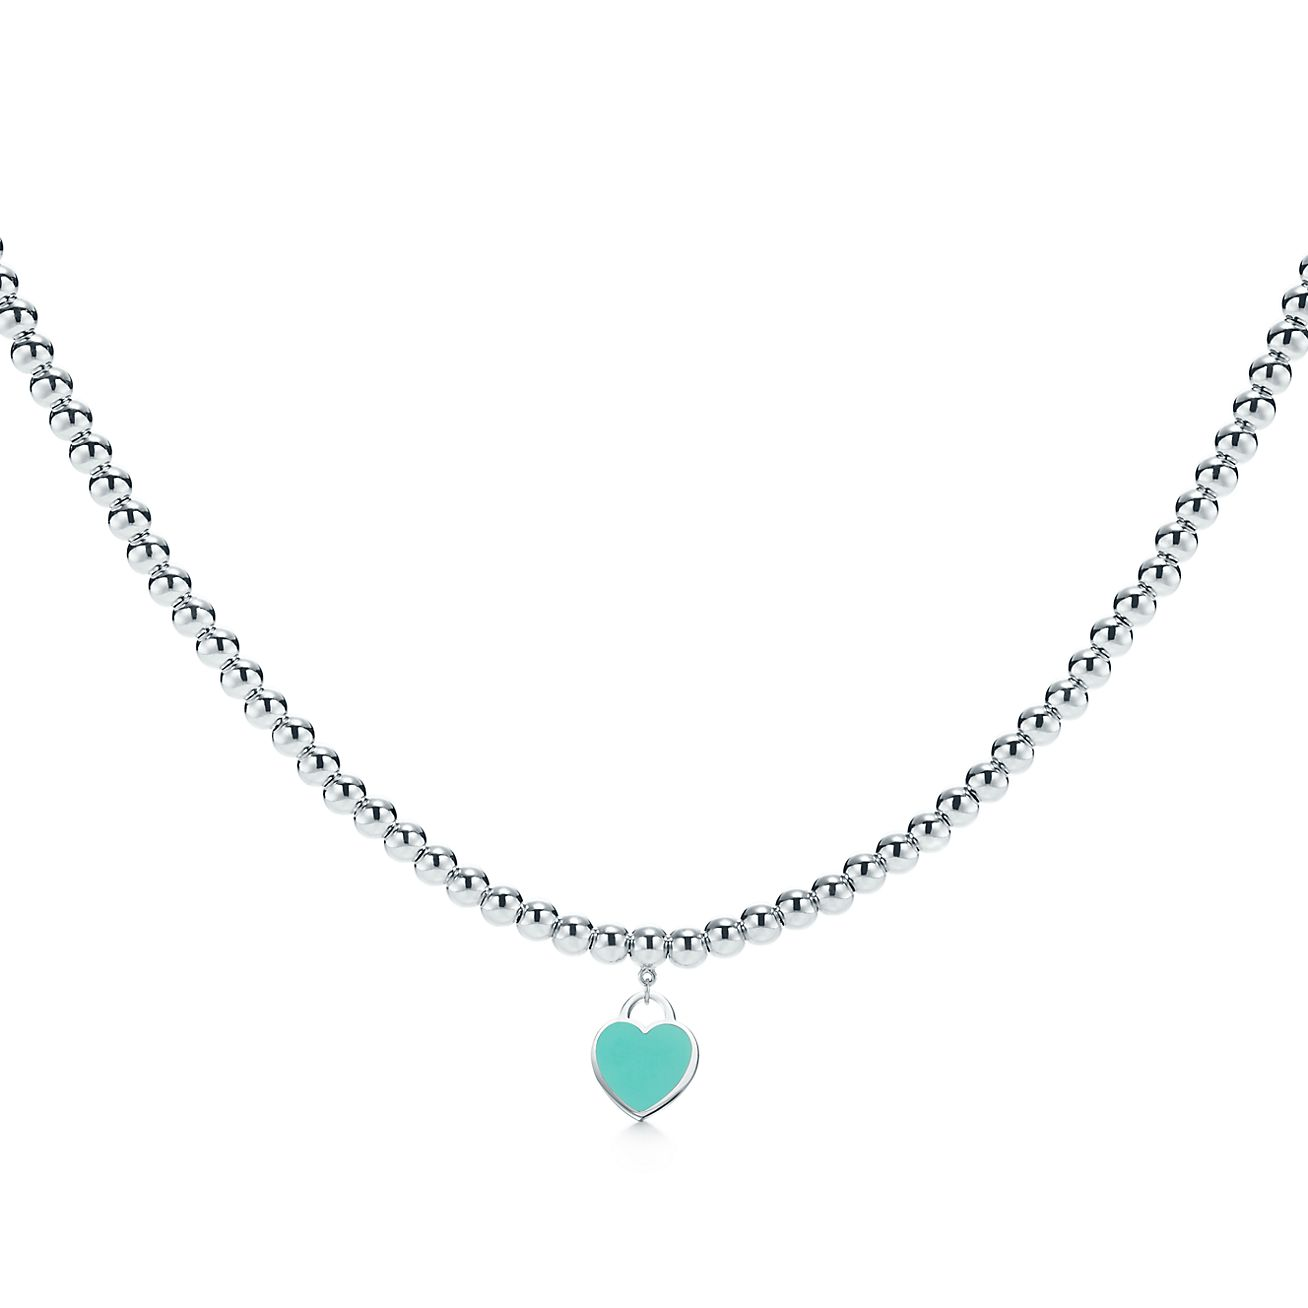 Bead necklace 50